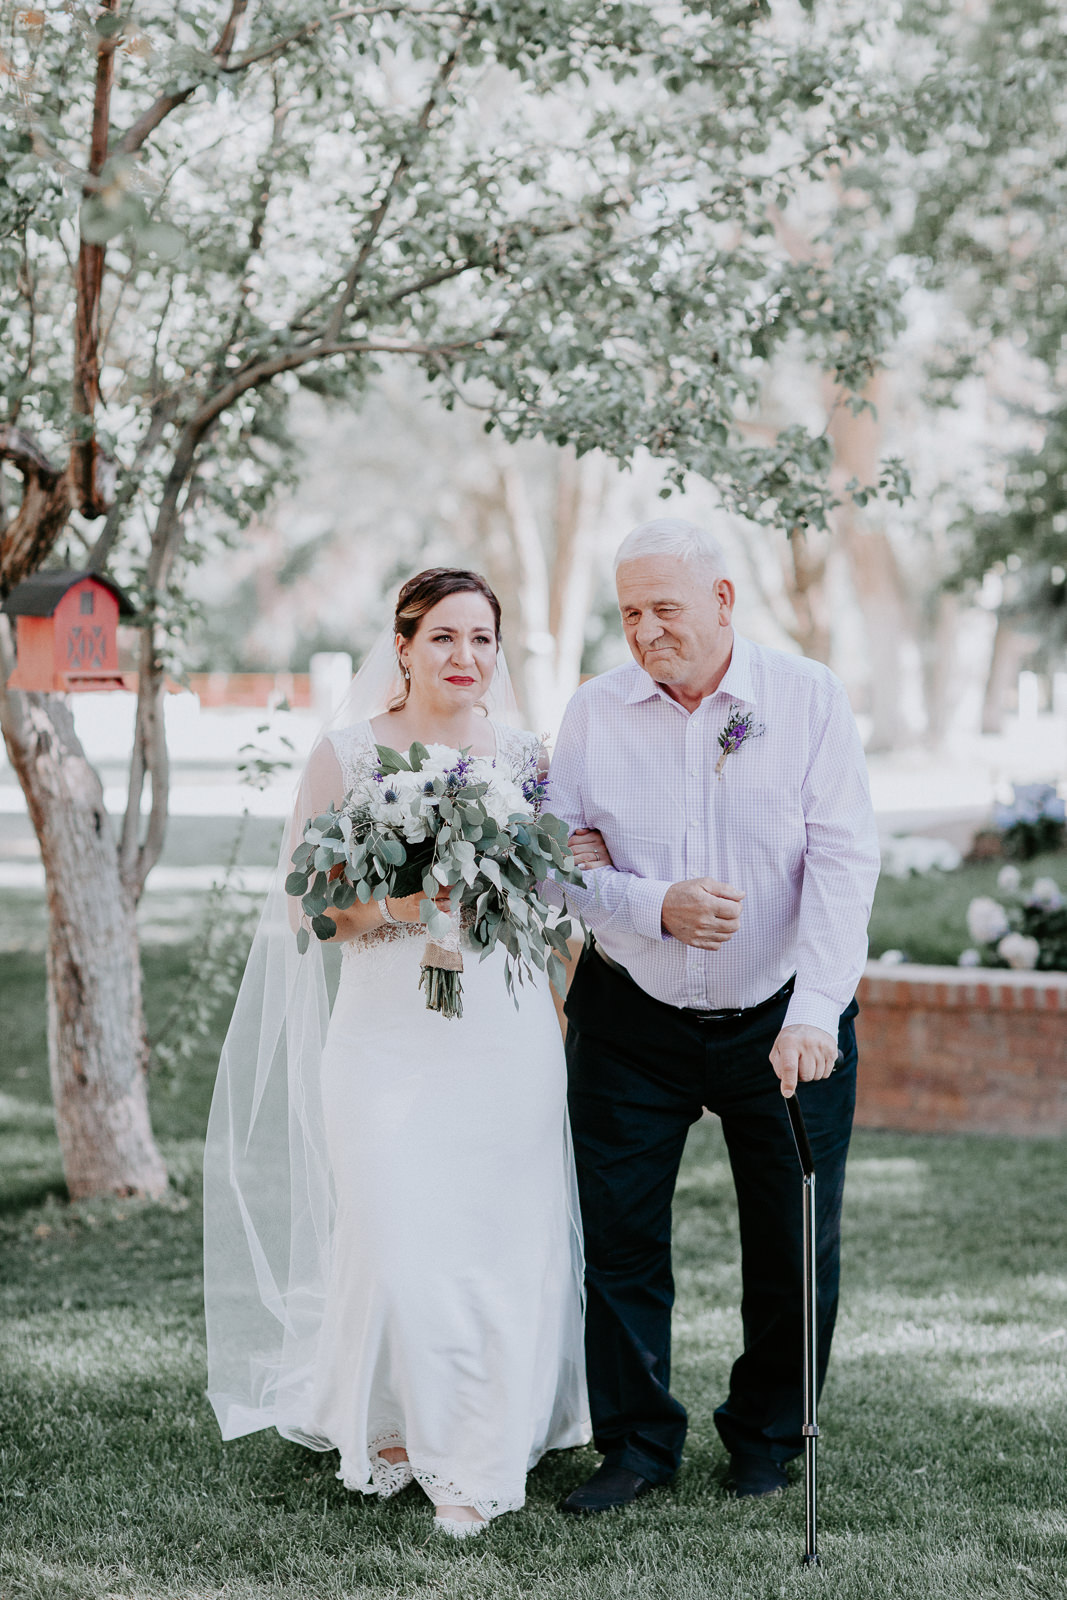 Father walking his crying daughter down the aisle during wedding ceremony